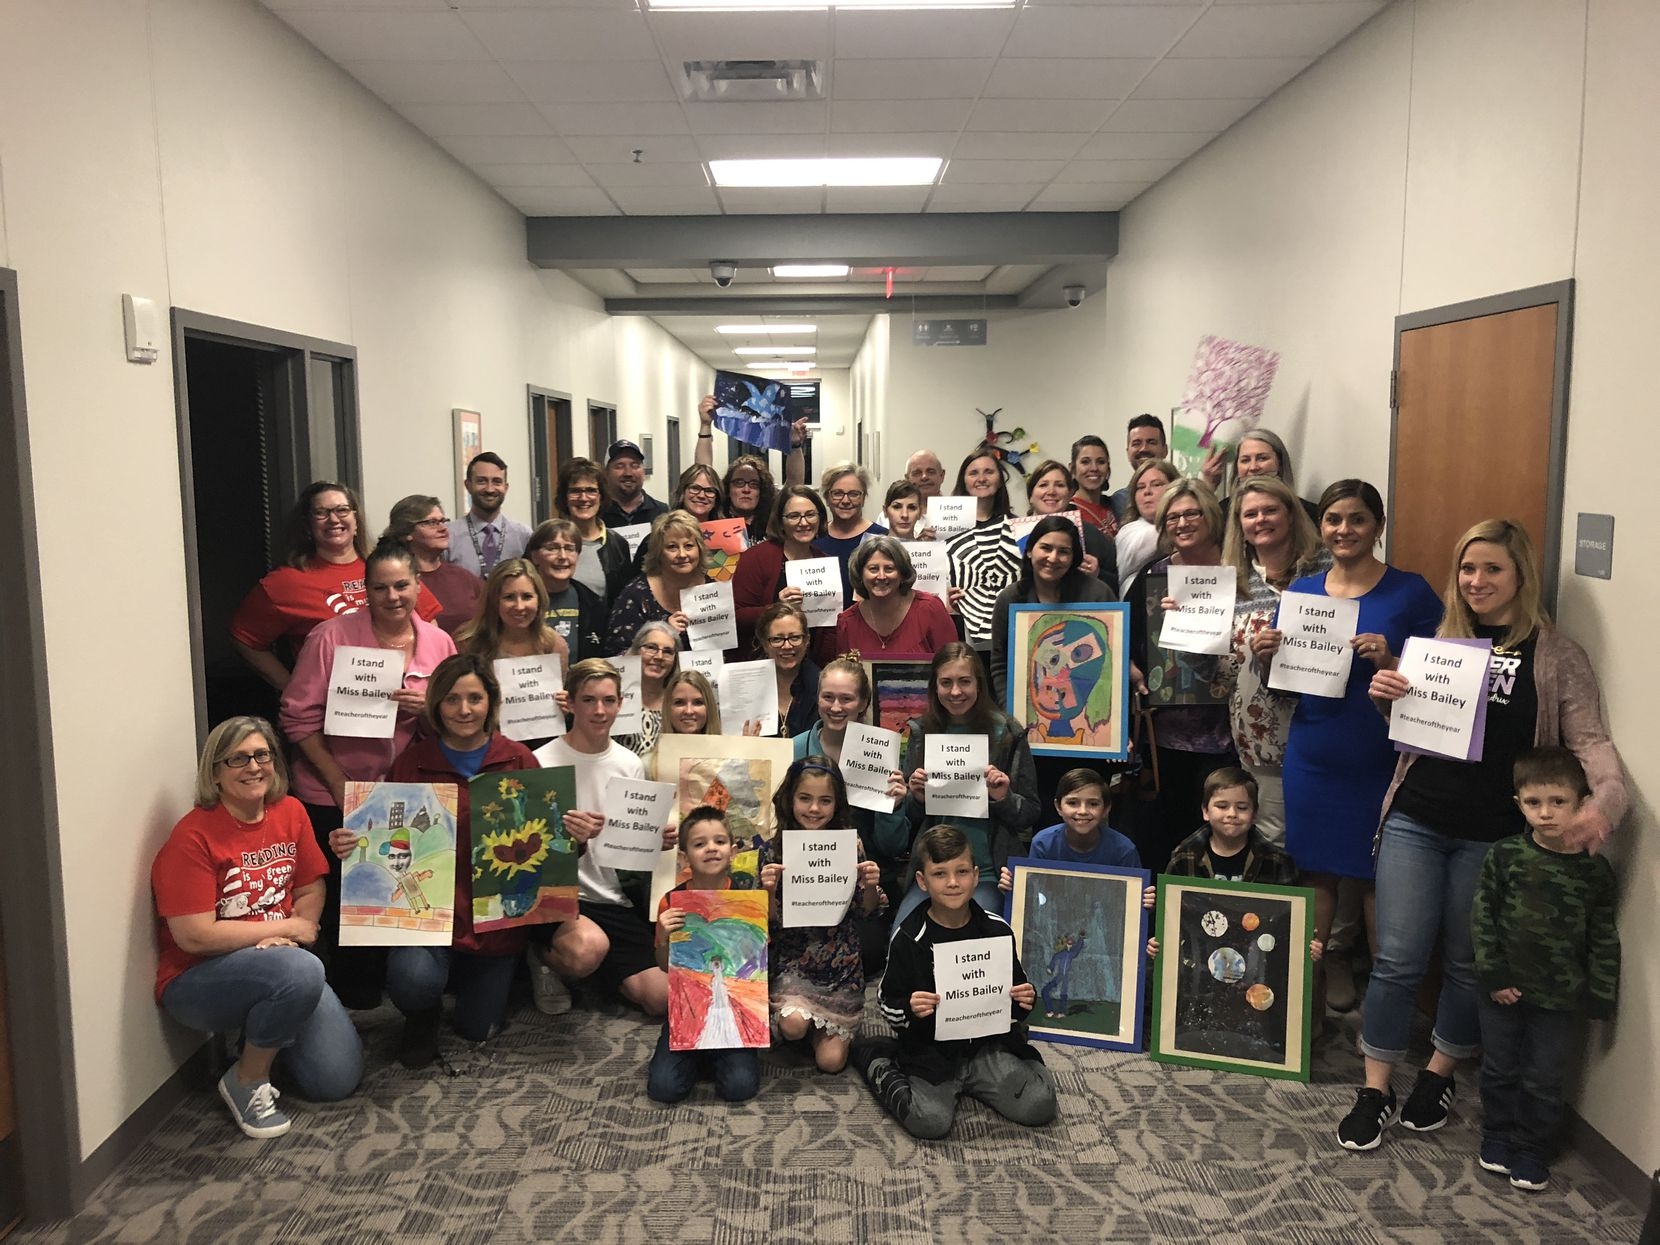 Approximately 40 parents and students showed up at Tuesday night's school board meeting to speak in support of Stacy Bailey